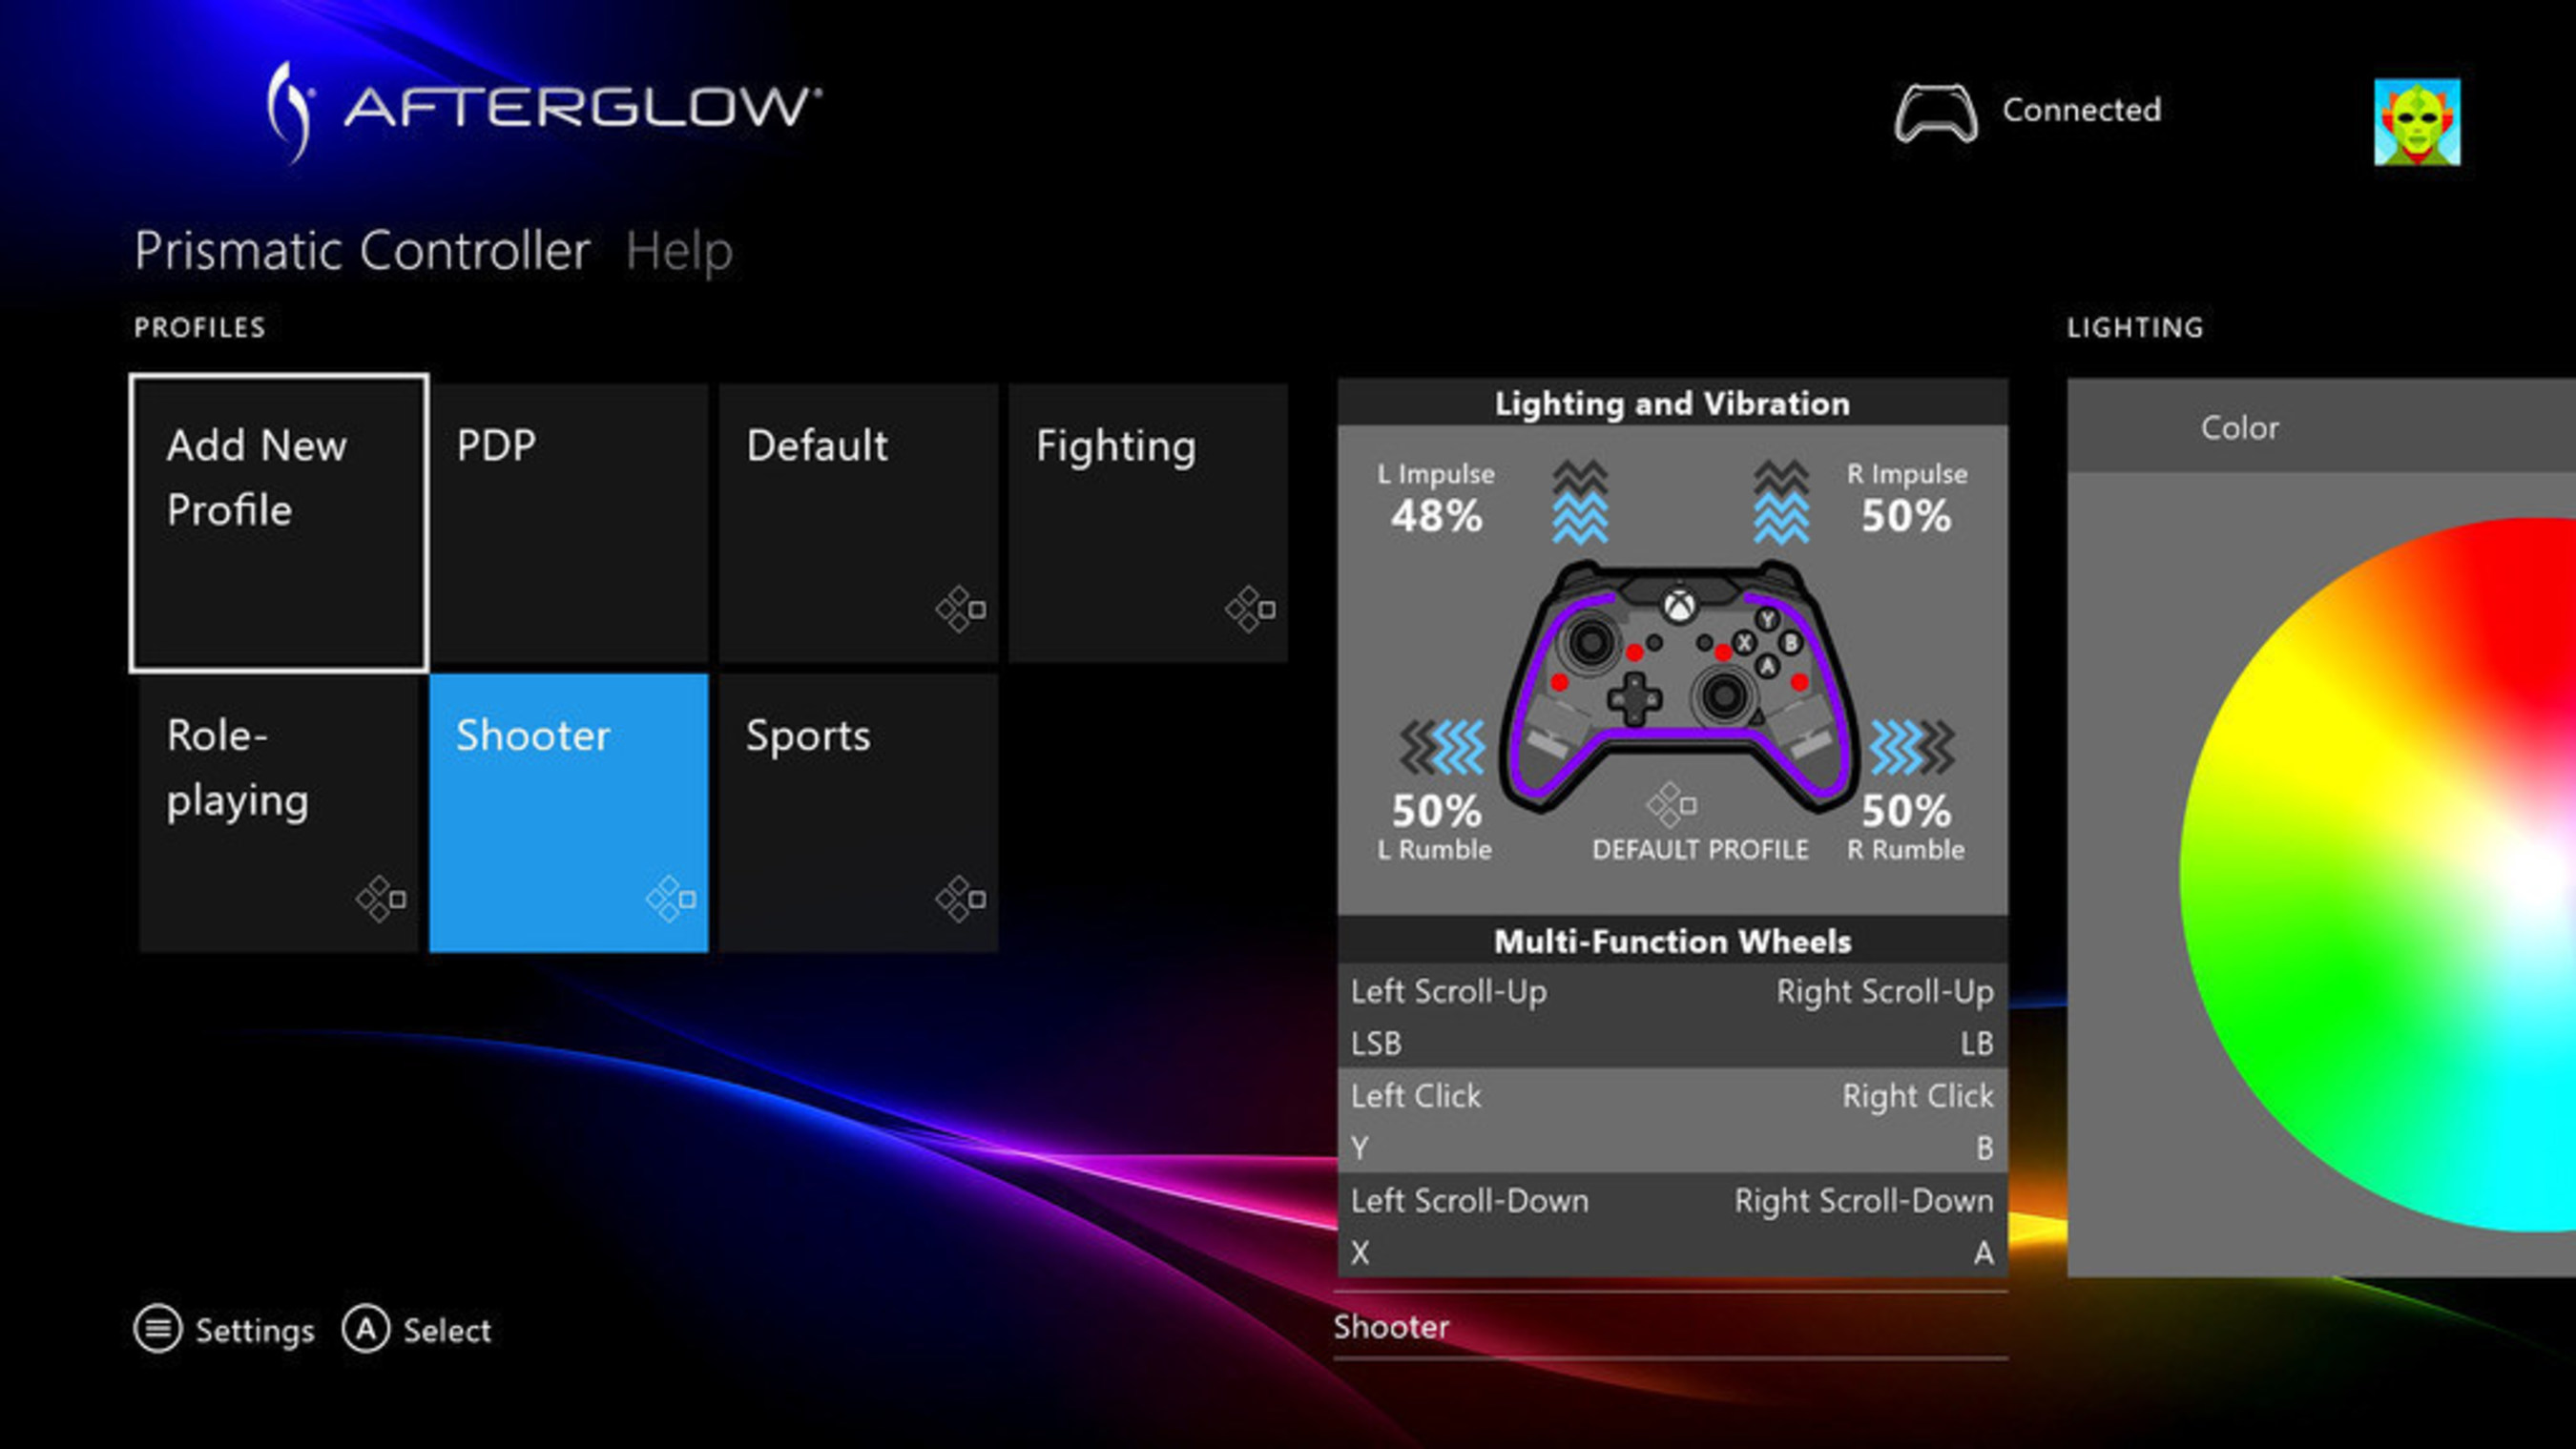 Pdp S Free Afterglow Prismatic Controller Configuration App For Xbox One Gives Gamers The Power To Create Unique Controller Profiles For Any Game